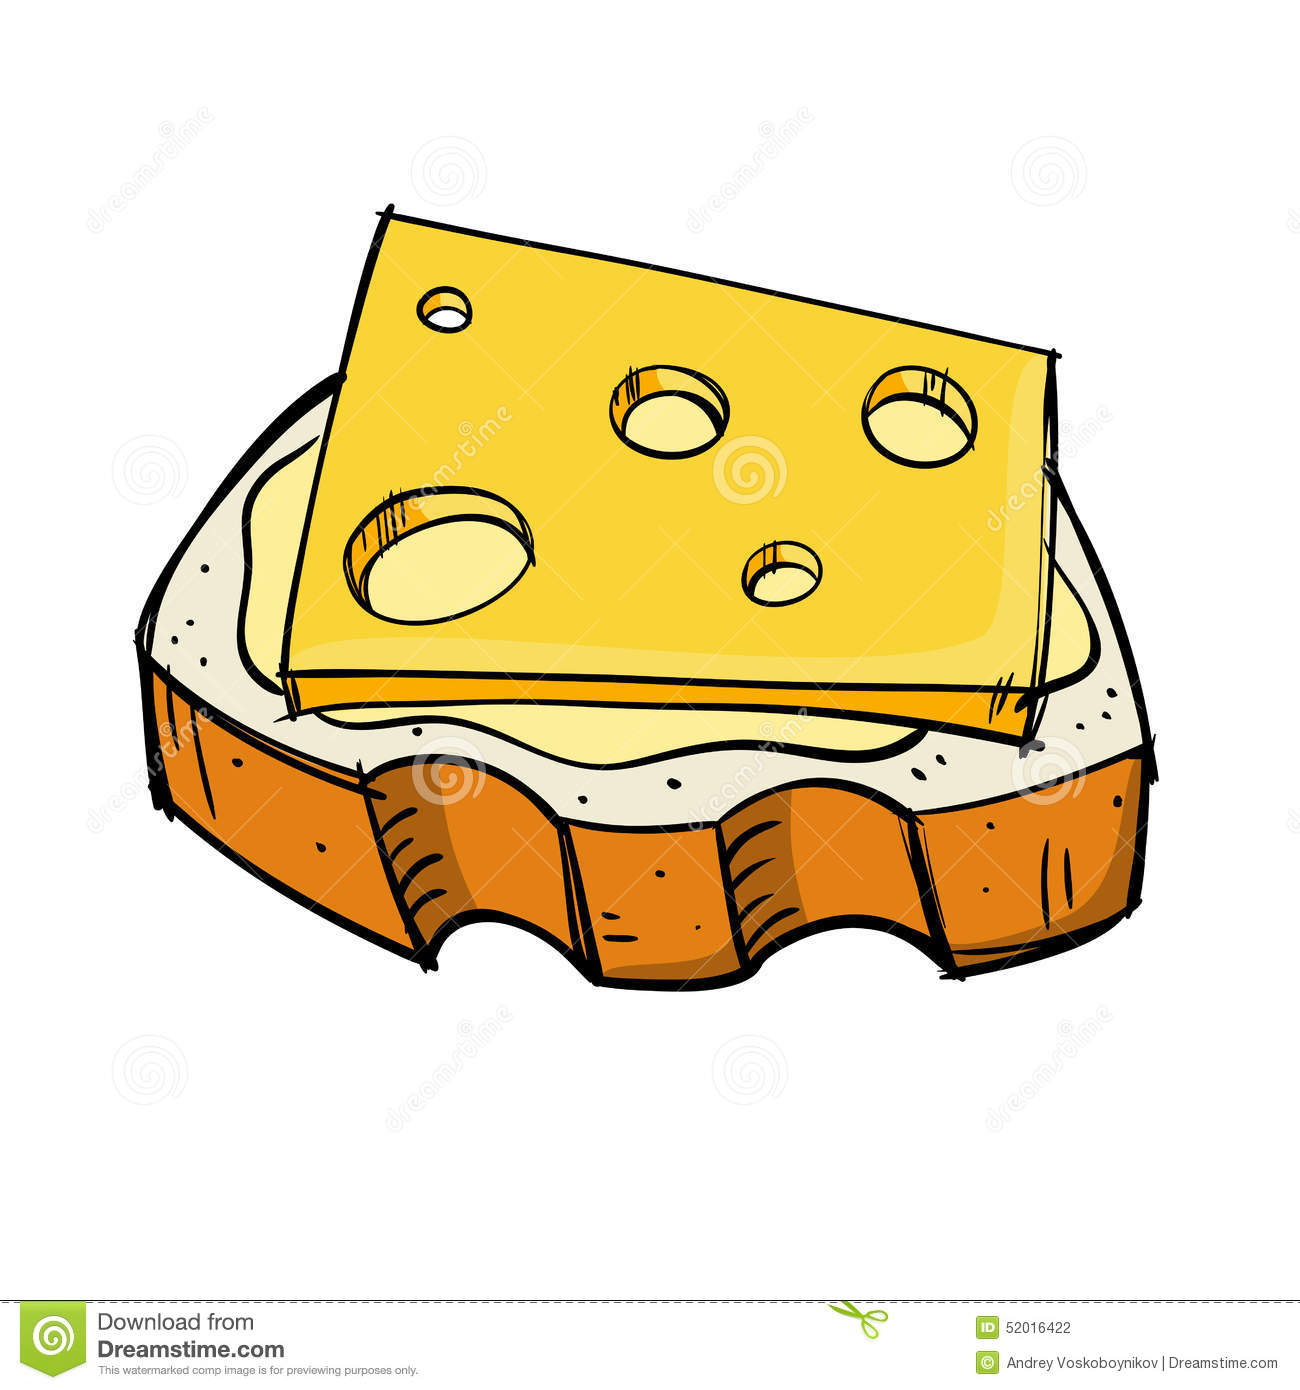 Bread and cheese clipart 6 » Clipart Station.